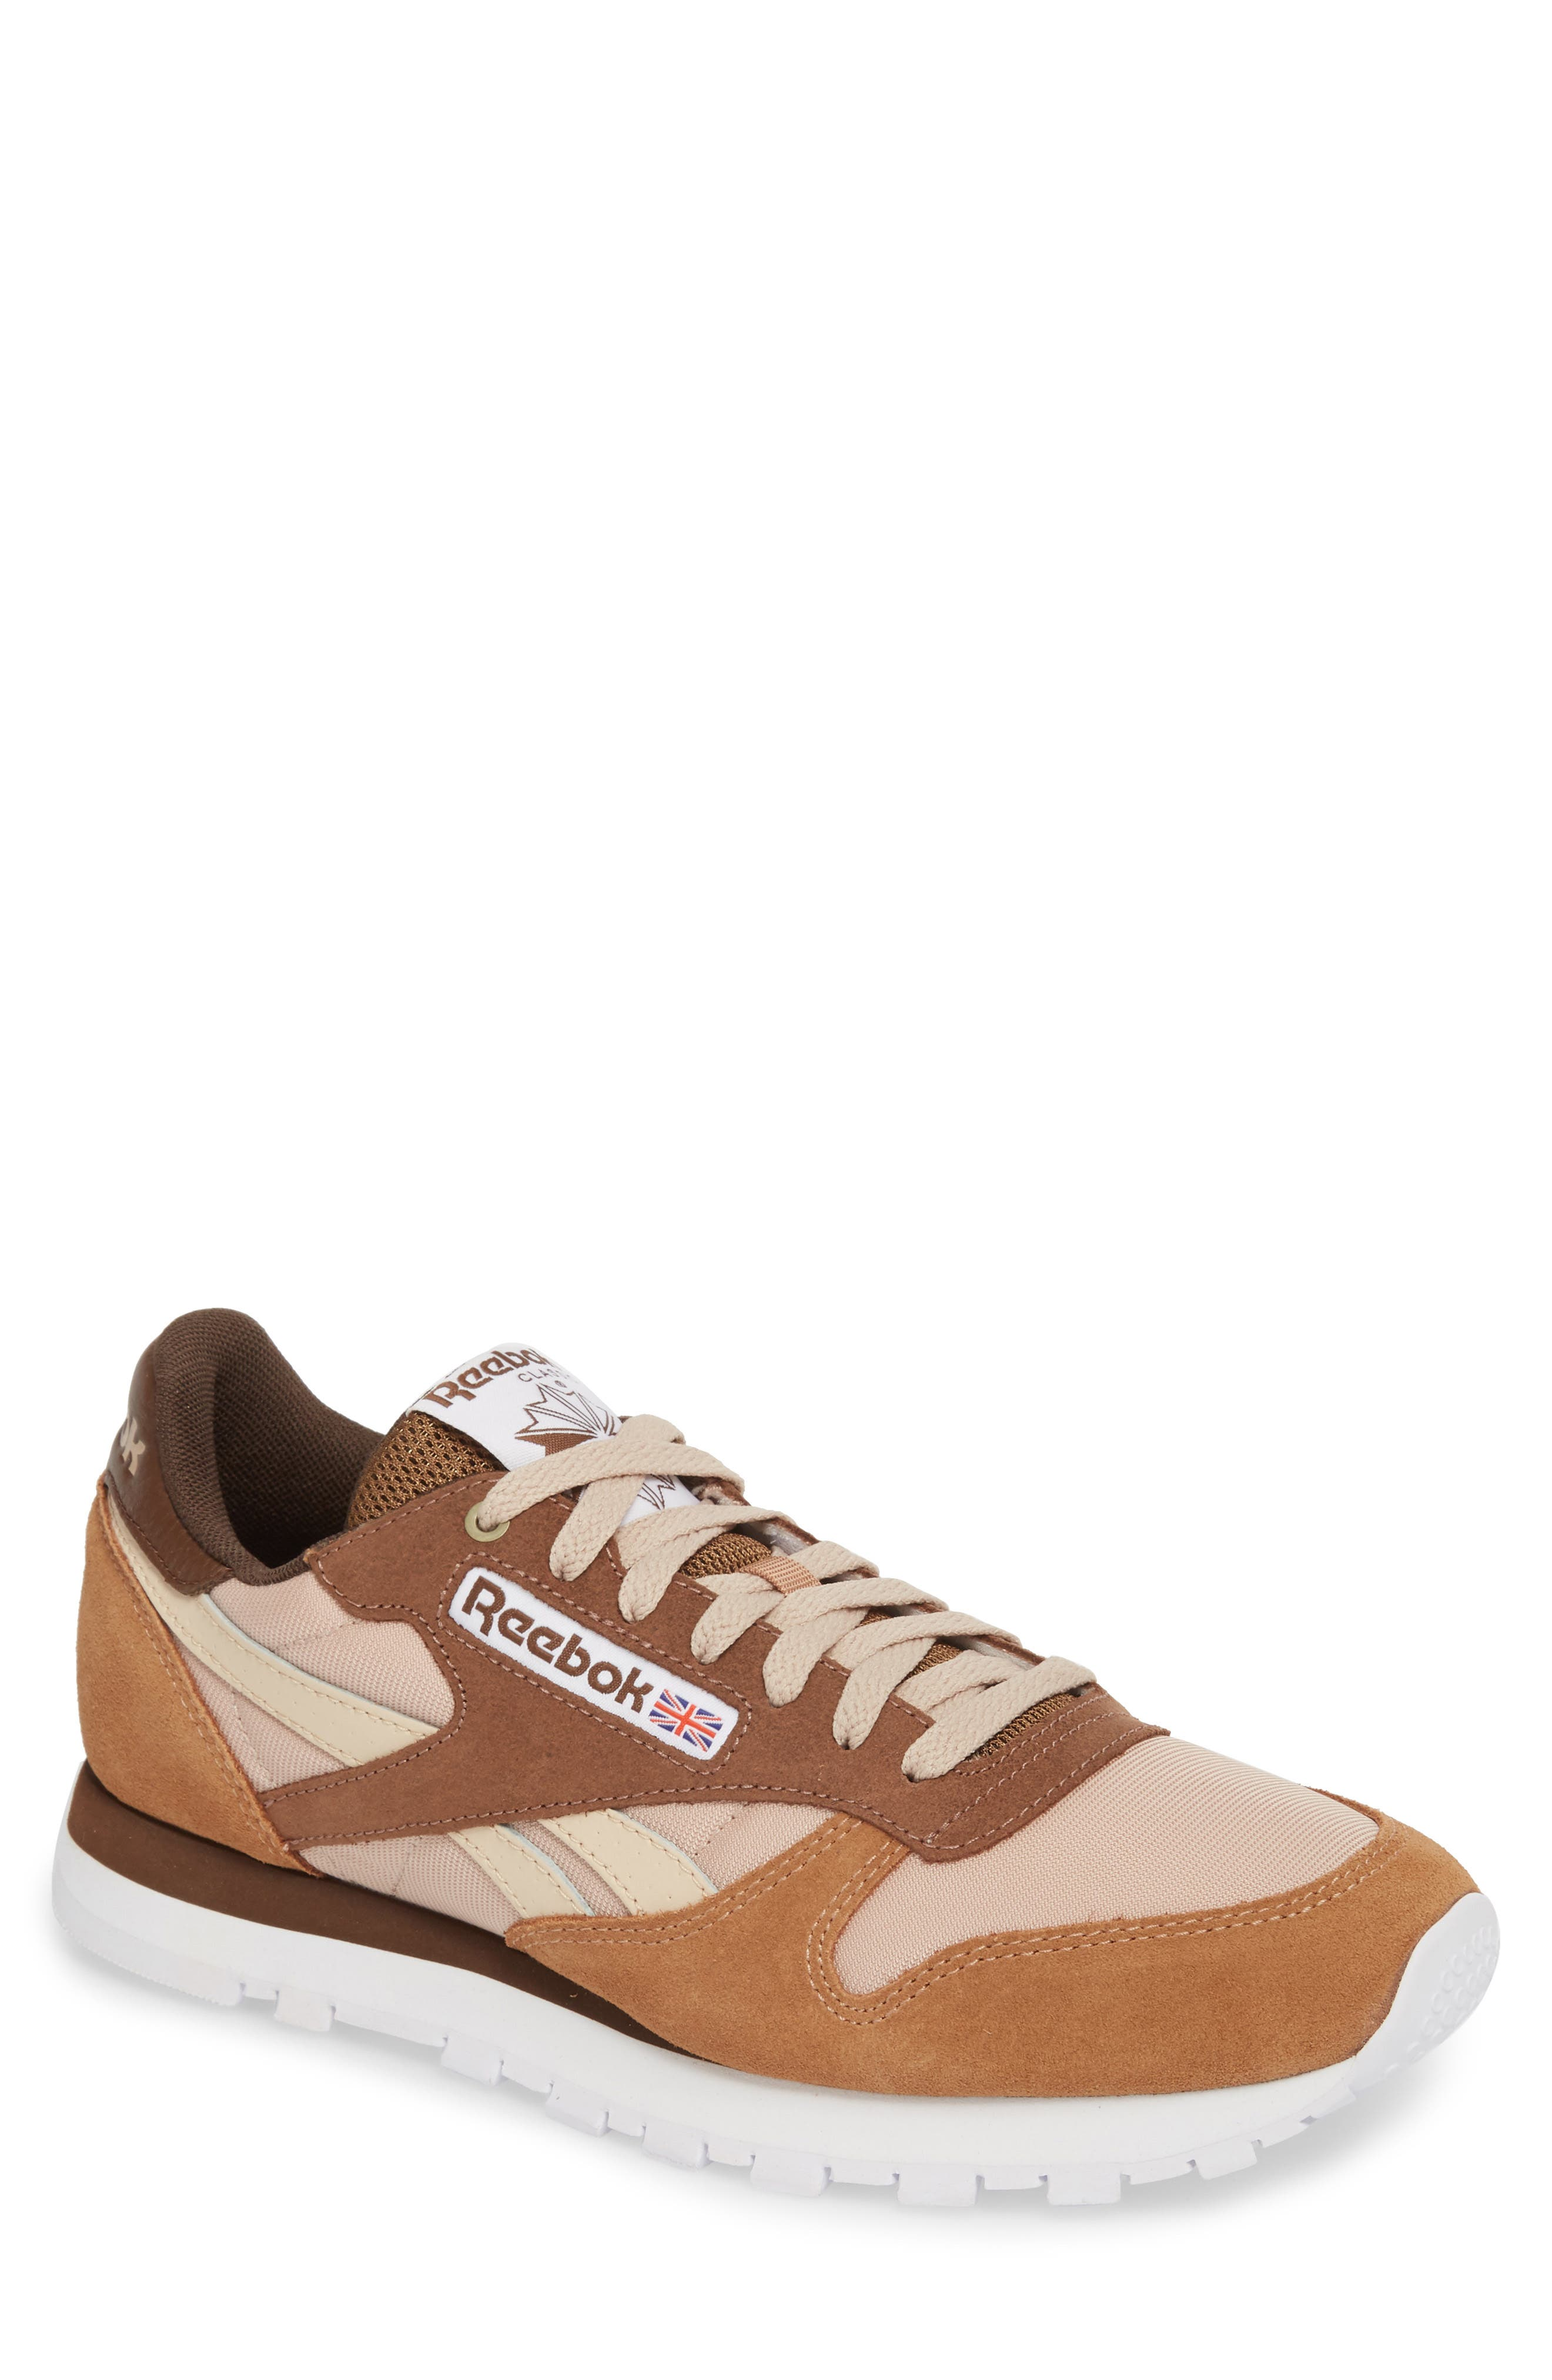 Reebok Classic Leather MCCS Sneaker (Men)